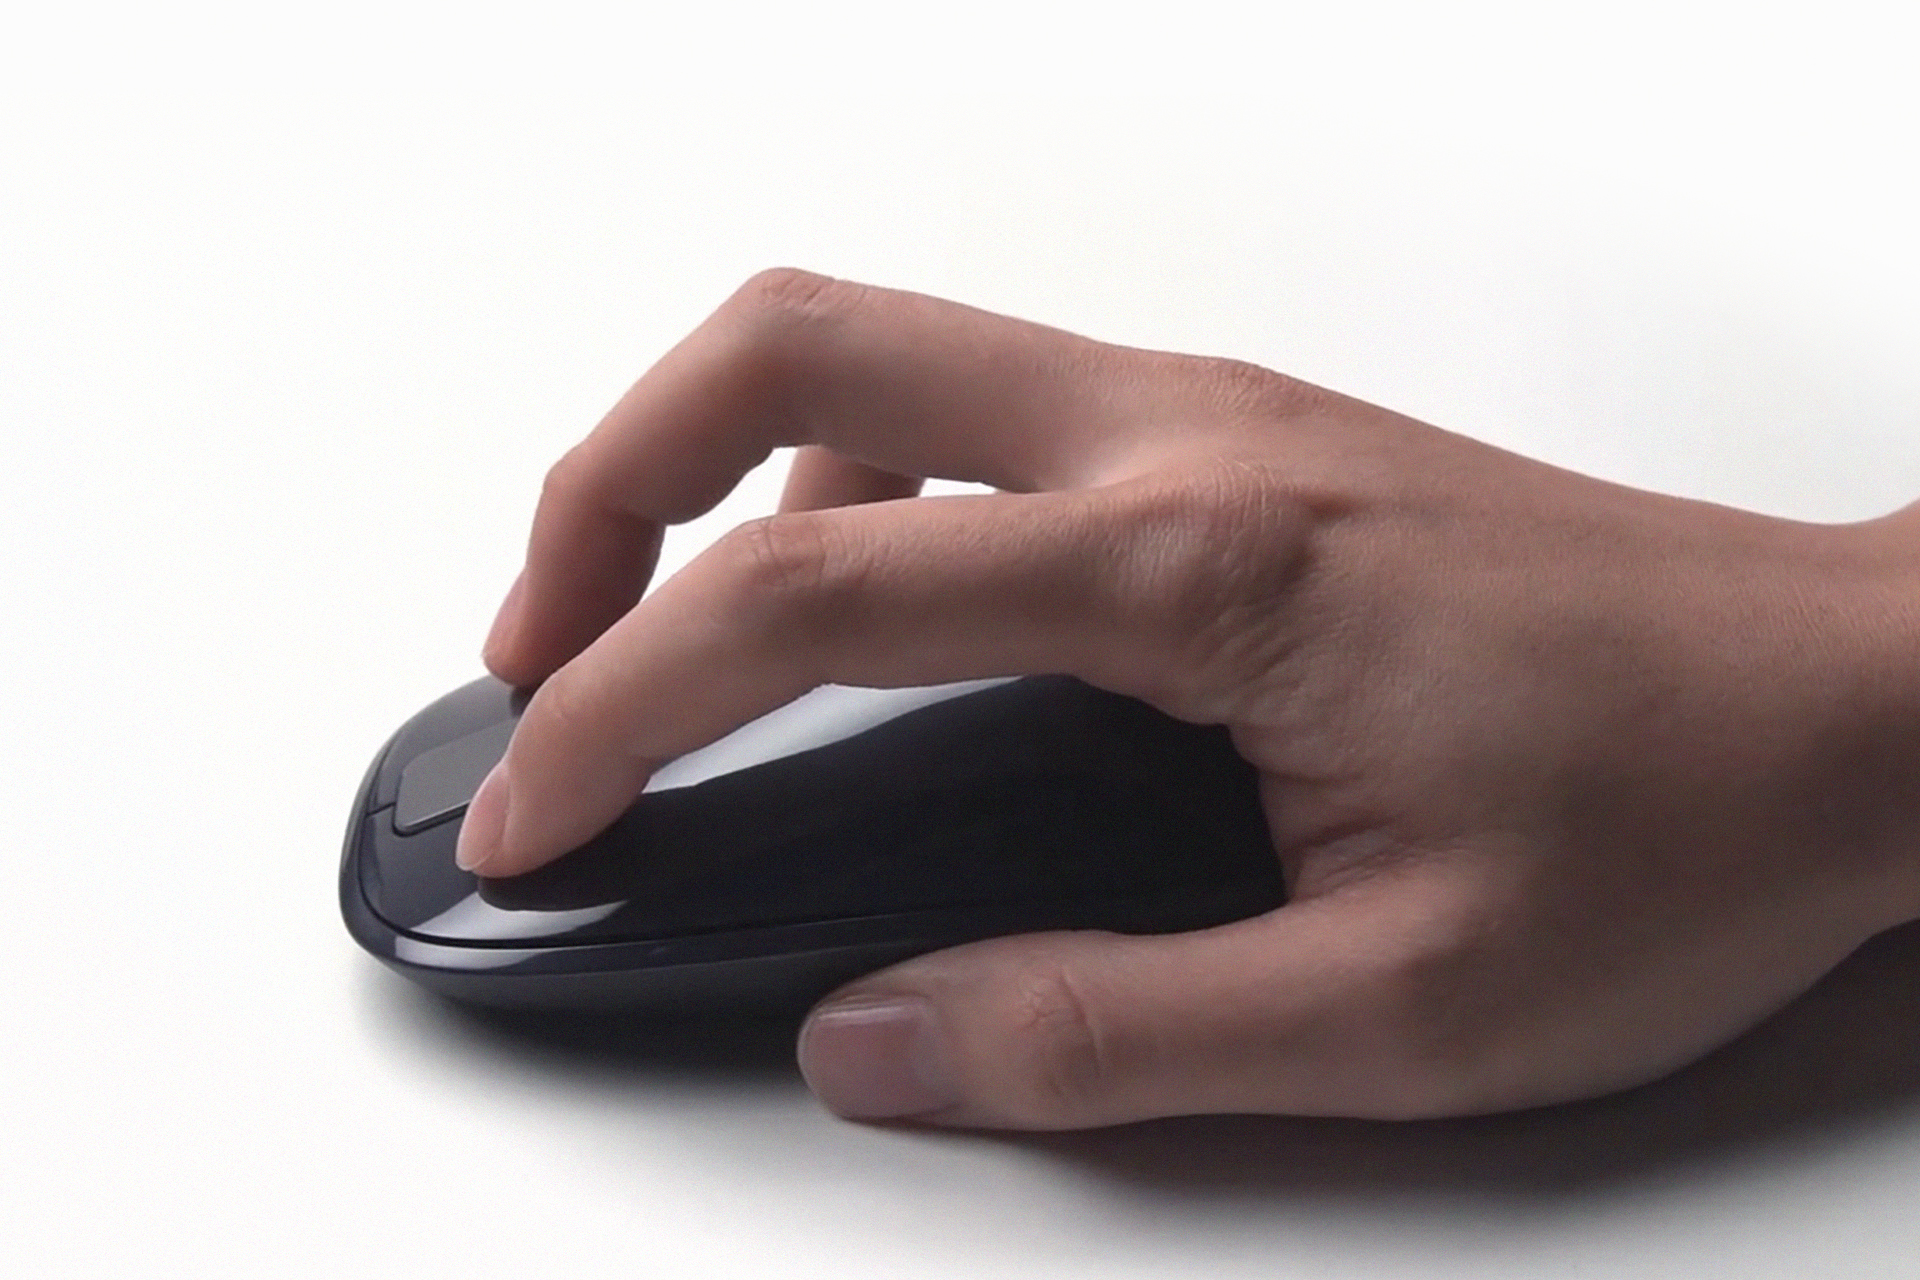 Microsoft Explorer Touch Mouse in a hand